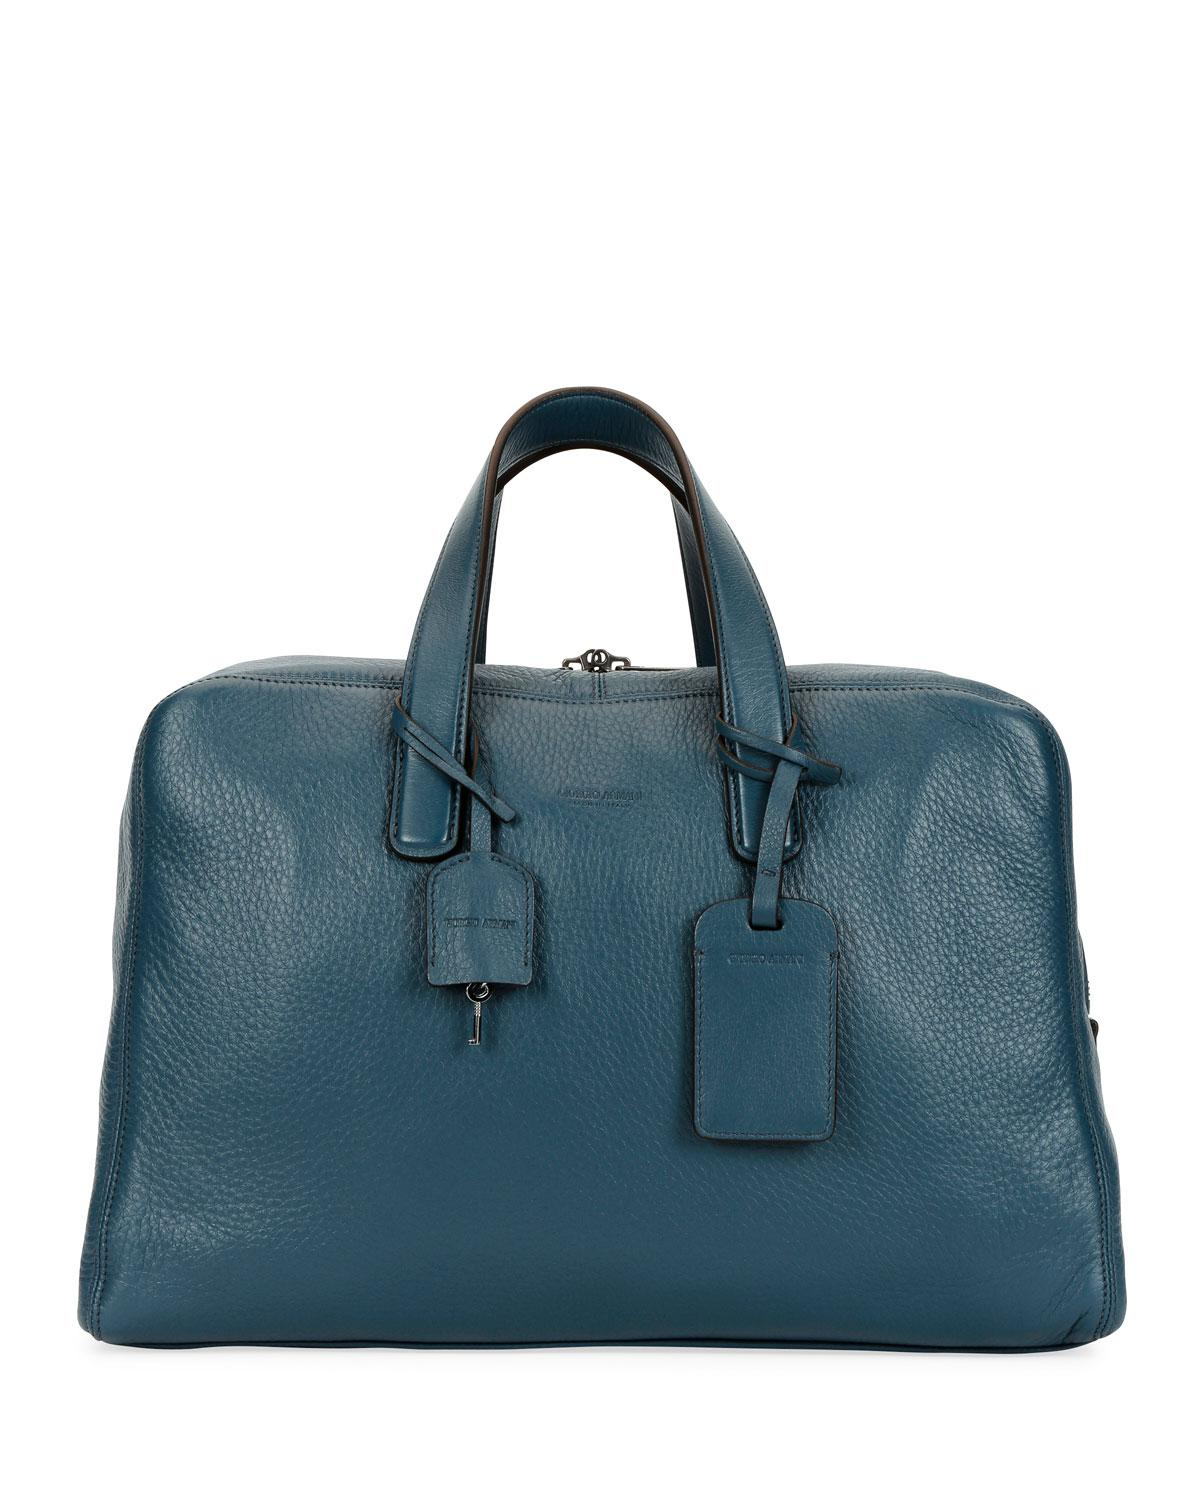 19fde8b3568c Lyst - Giorgio Armani Men s Deer Leather Carryall Duffel Bag in Blue for Men